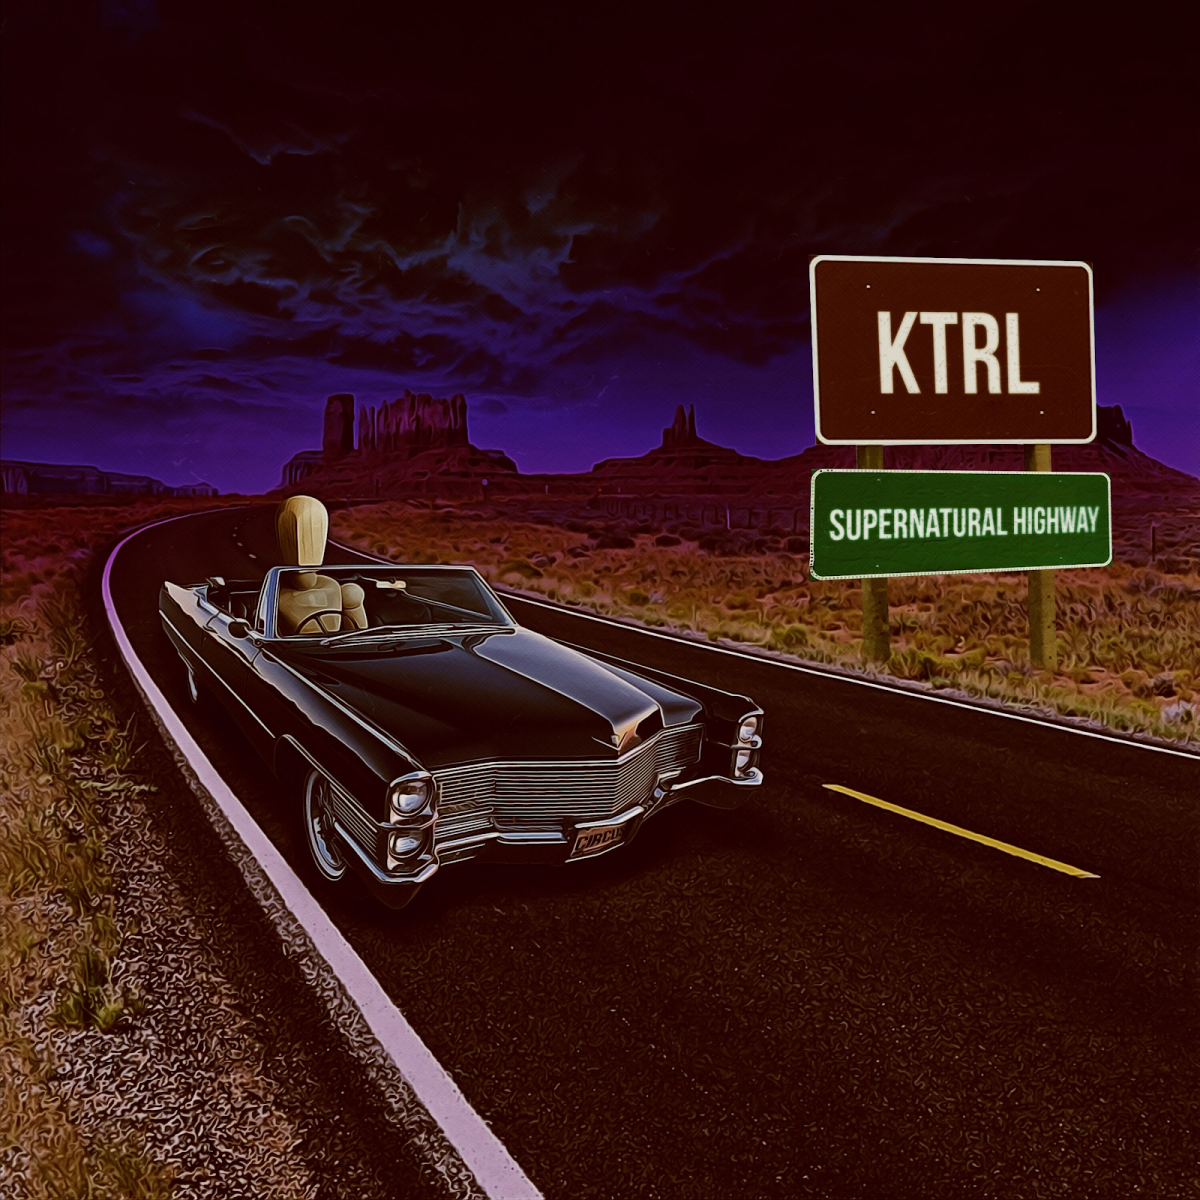 KTRL - Supernatural Highway EP on Circus Records (Album Artwork) -- EDM.com Feature